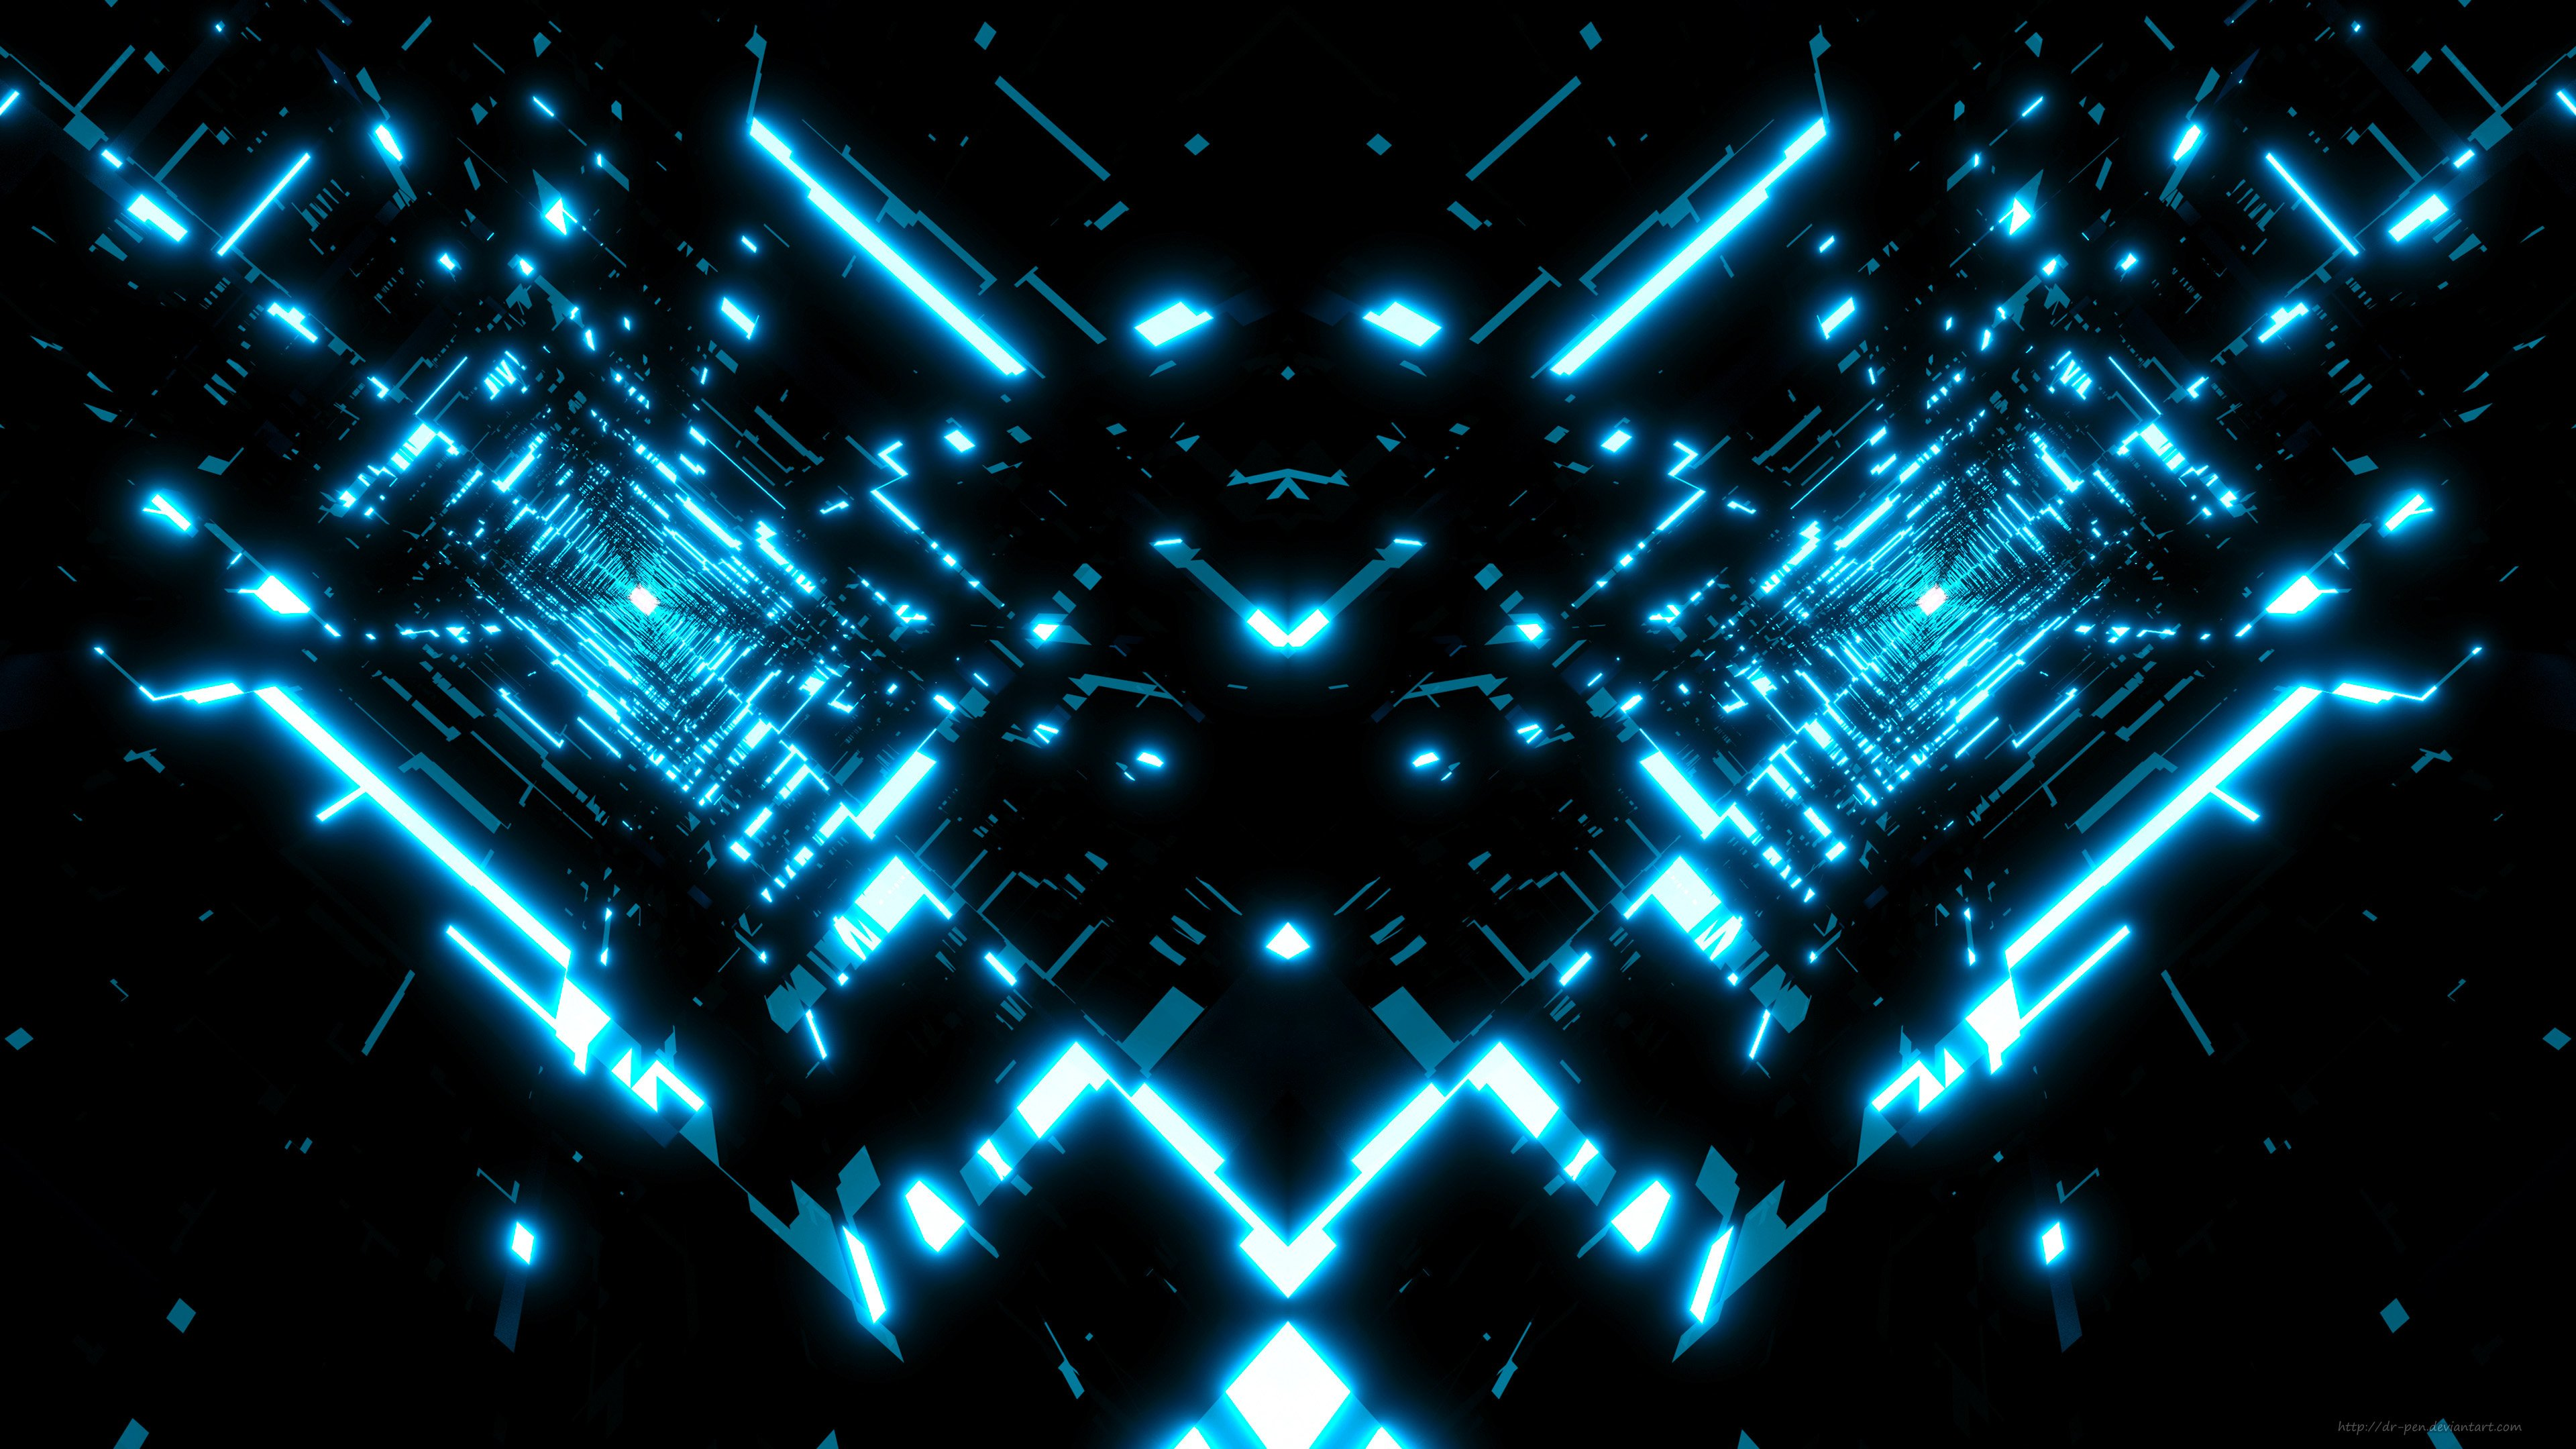 Tron Wallpapers Photos And Desktop Backgrounds Up To 8k